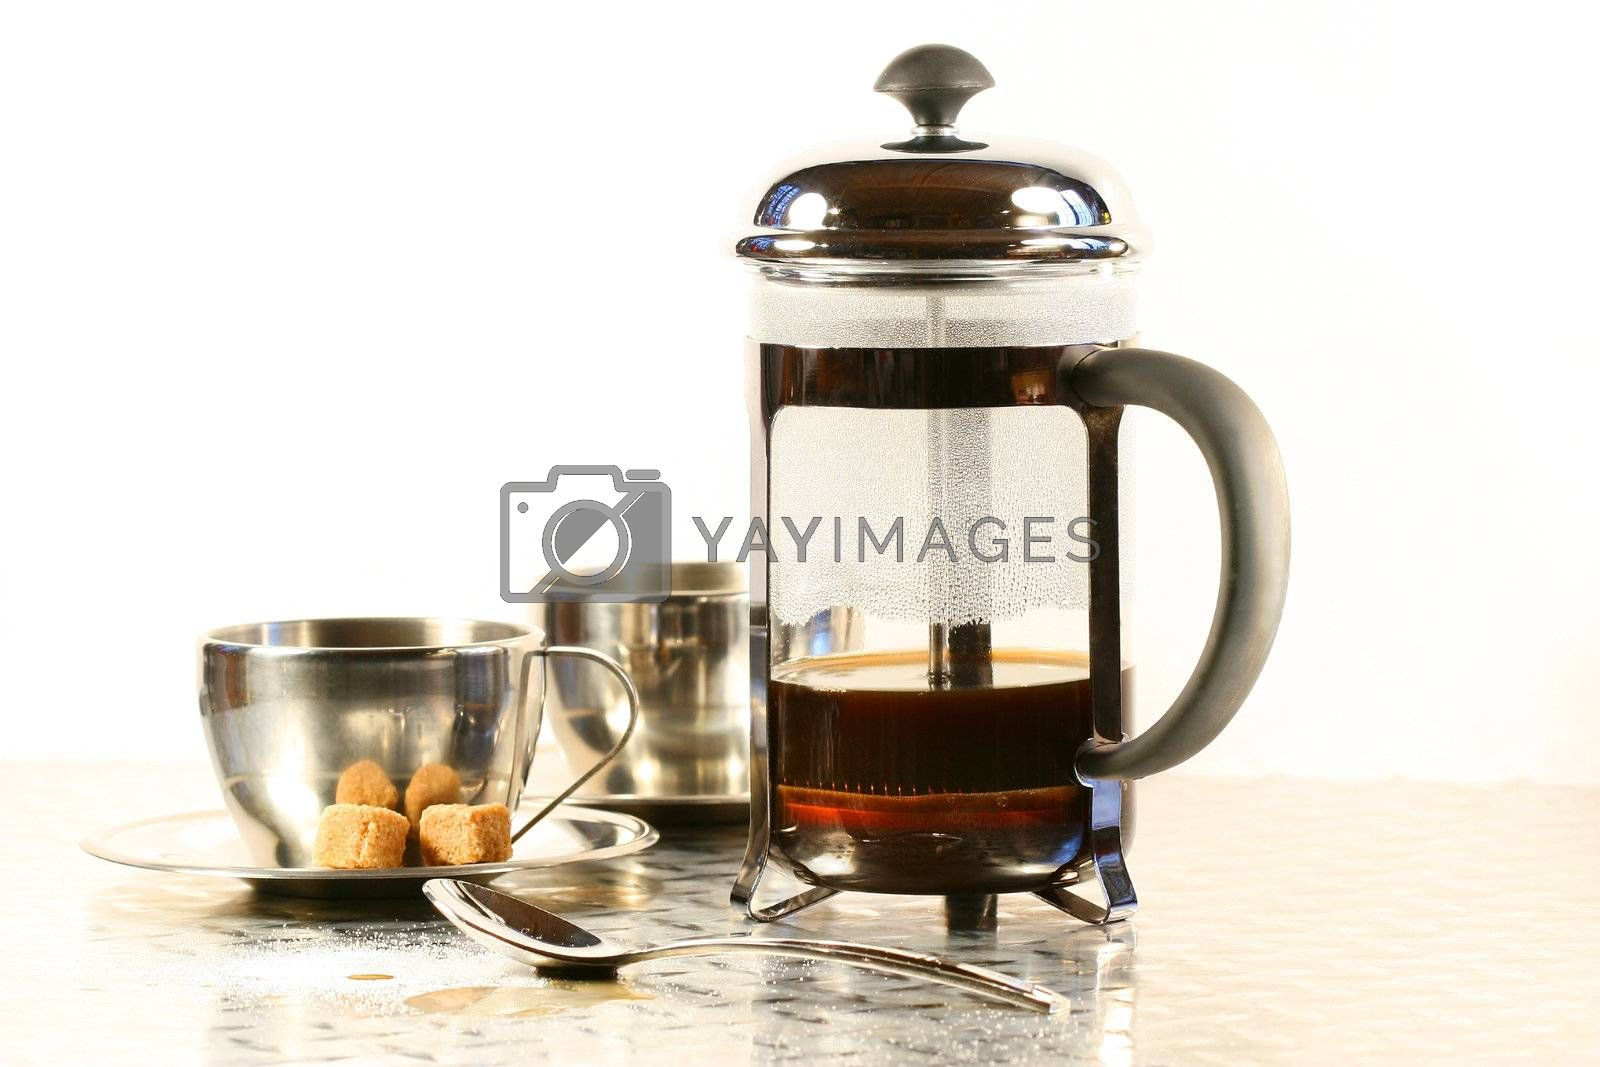 Coffee cups with french press / cafetiere